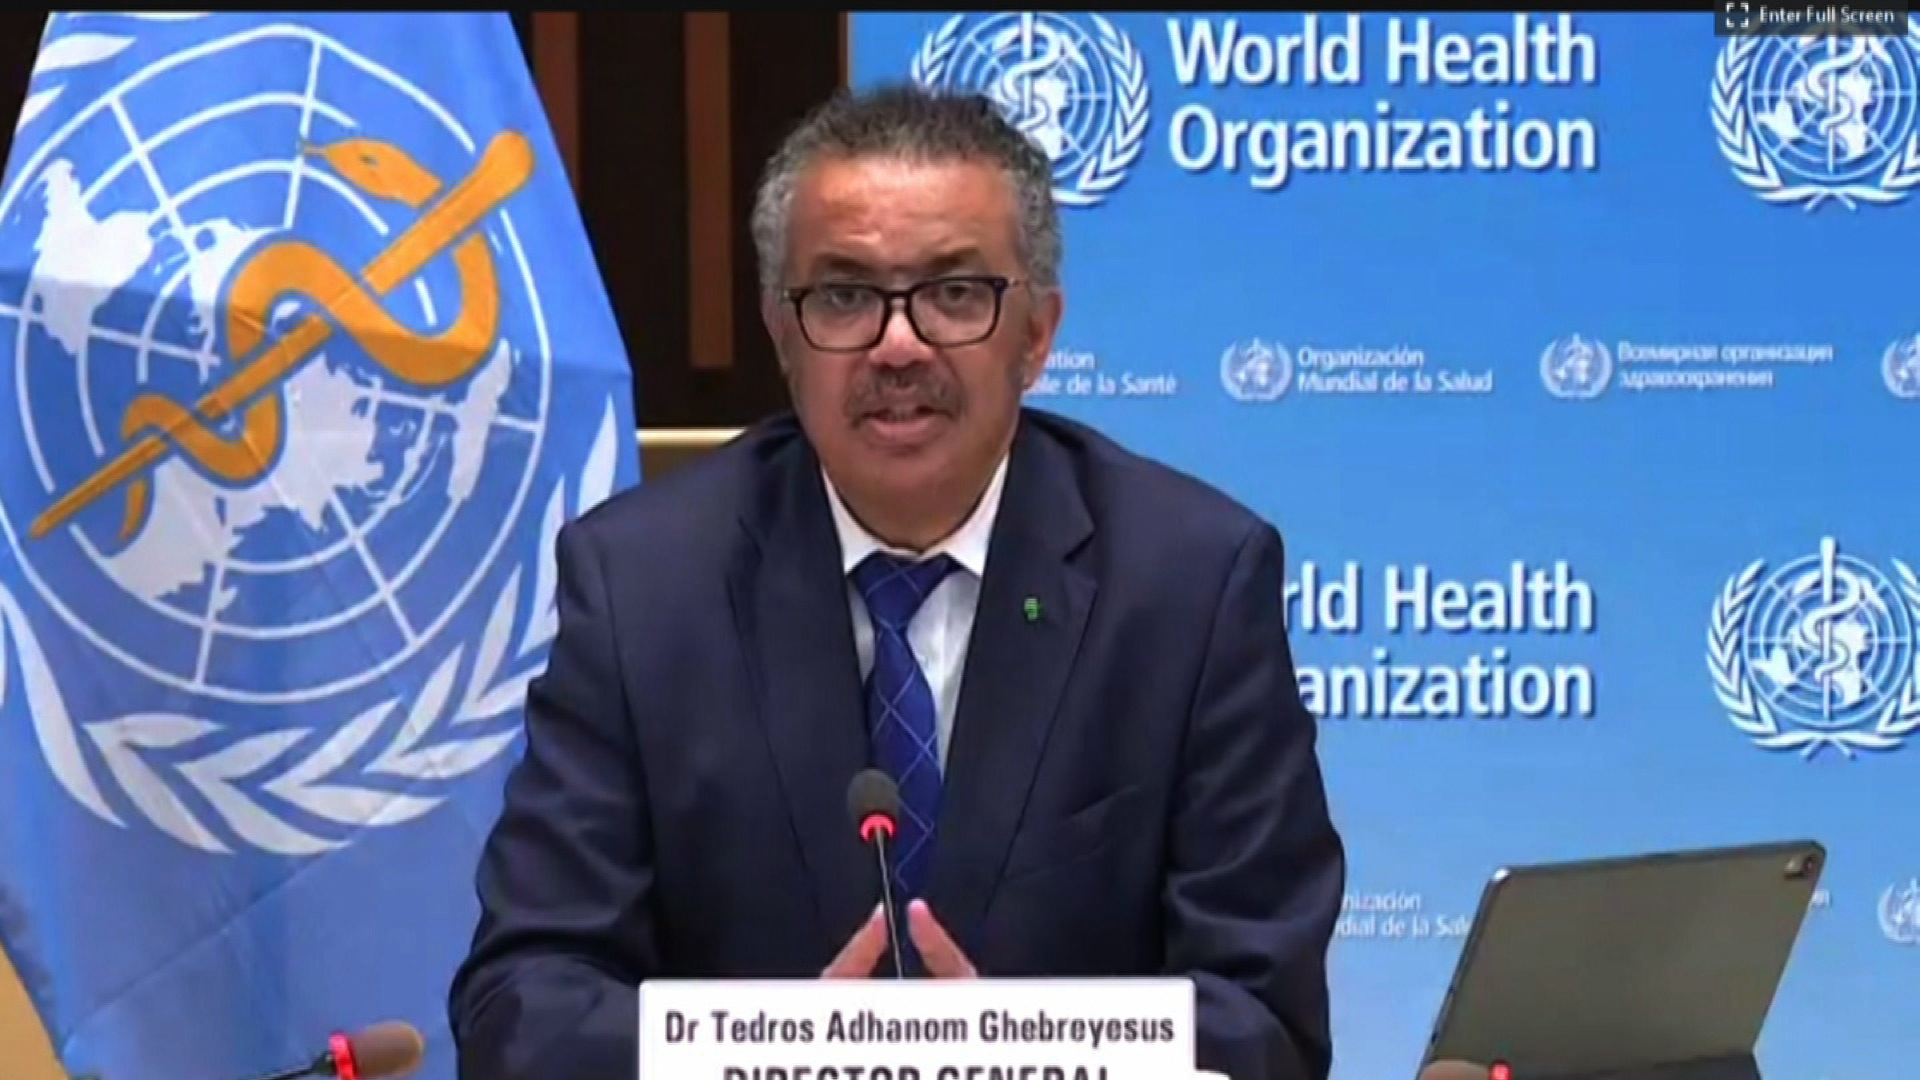 Tedros Adhanom Ghebreyesus, WHO director-general, speaks during a news conference in Geneva, Switzerland, on September 28.